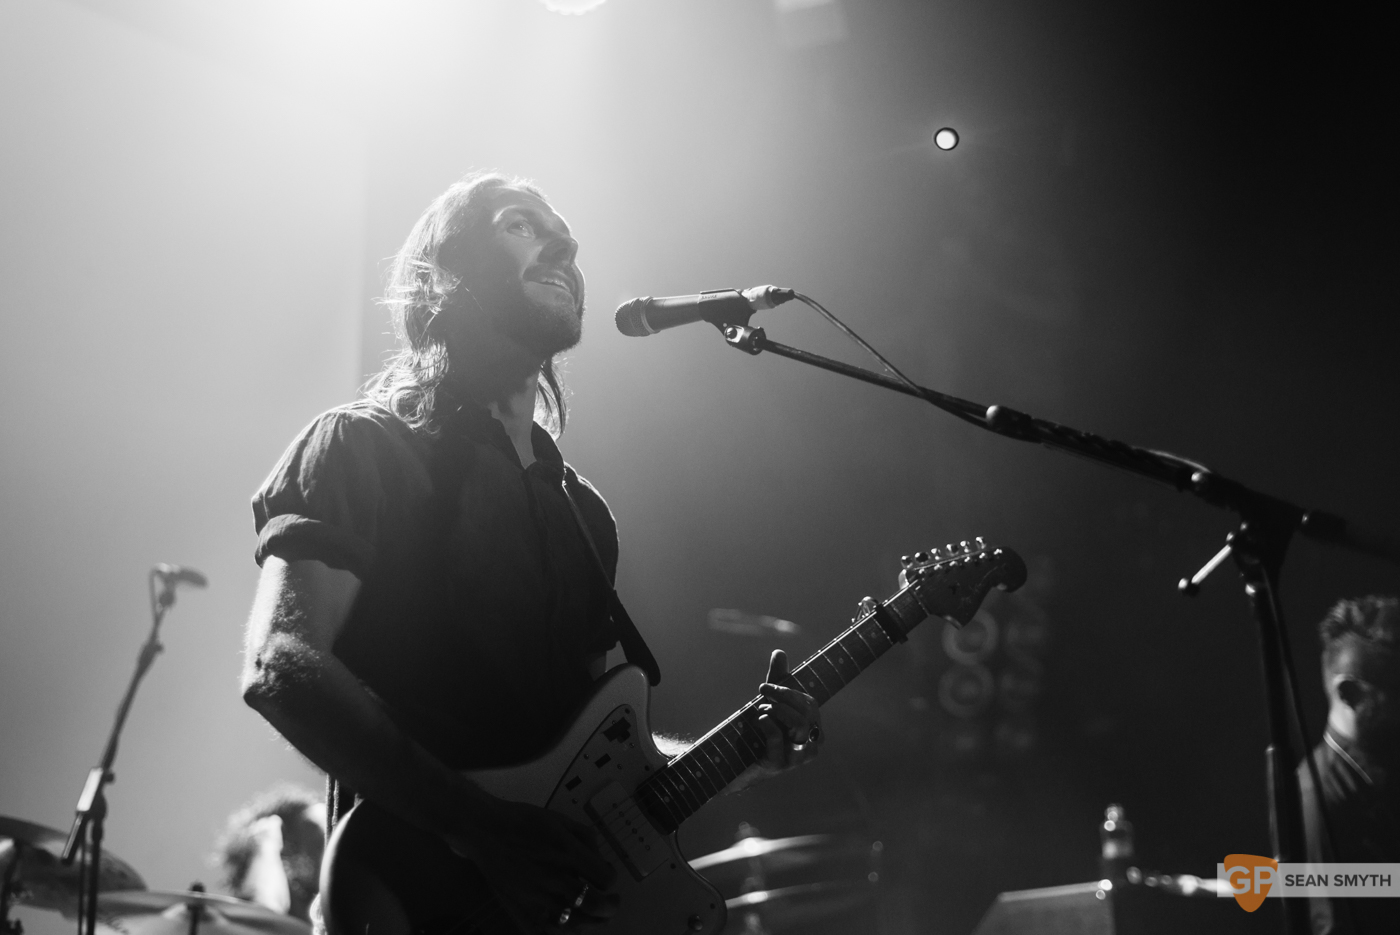 feeder-at-the-academy-dublin-by-sean-smyth-16-10-16-15-of-22